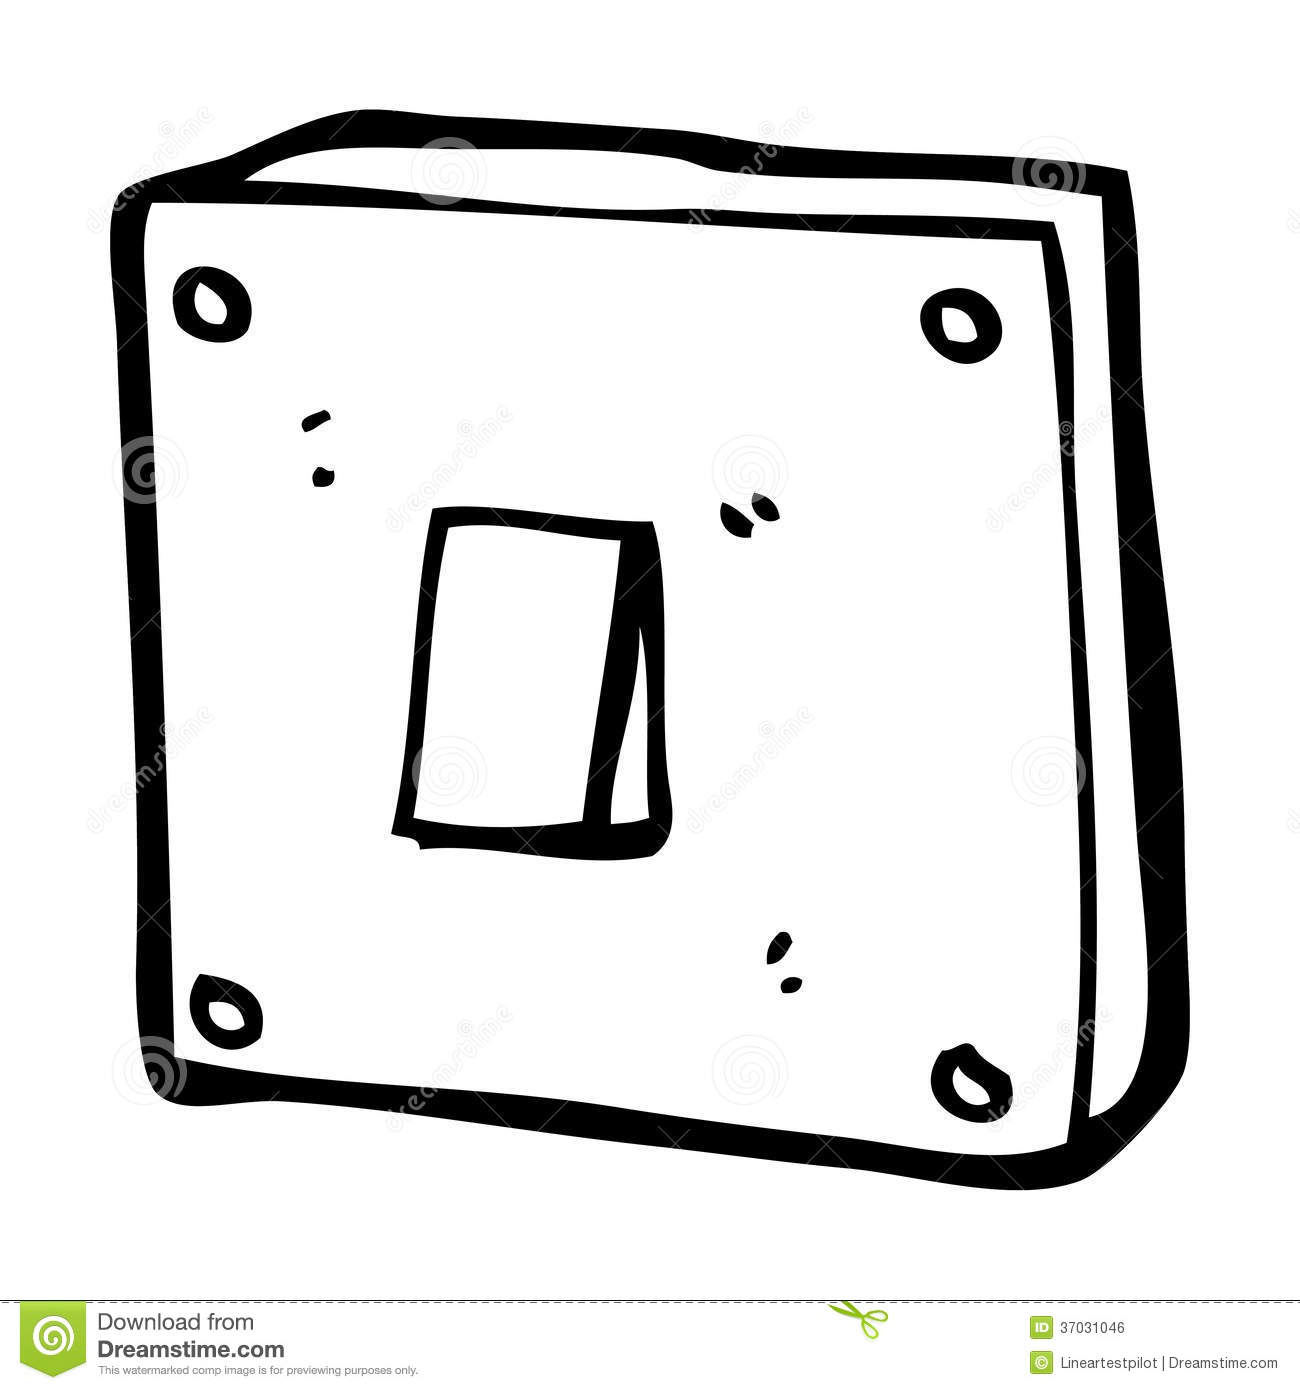 Light Switch Off Clipart Cartoon Light Switch Royalty Free Stock Image Image